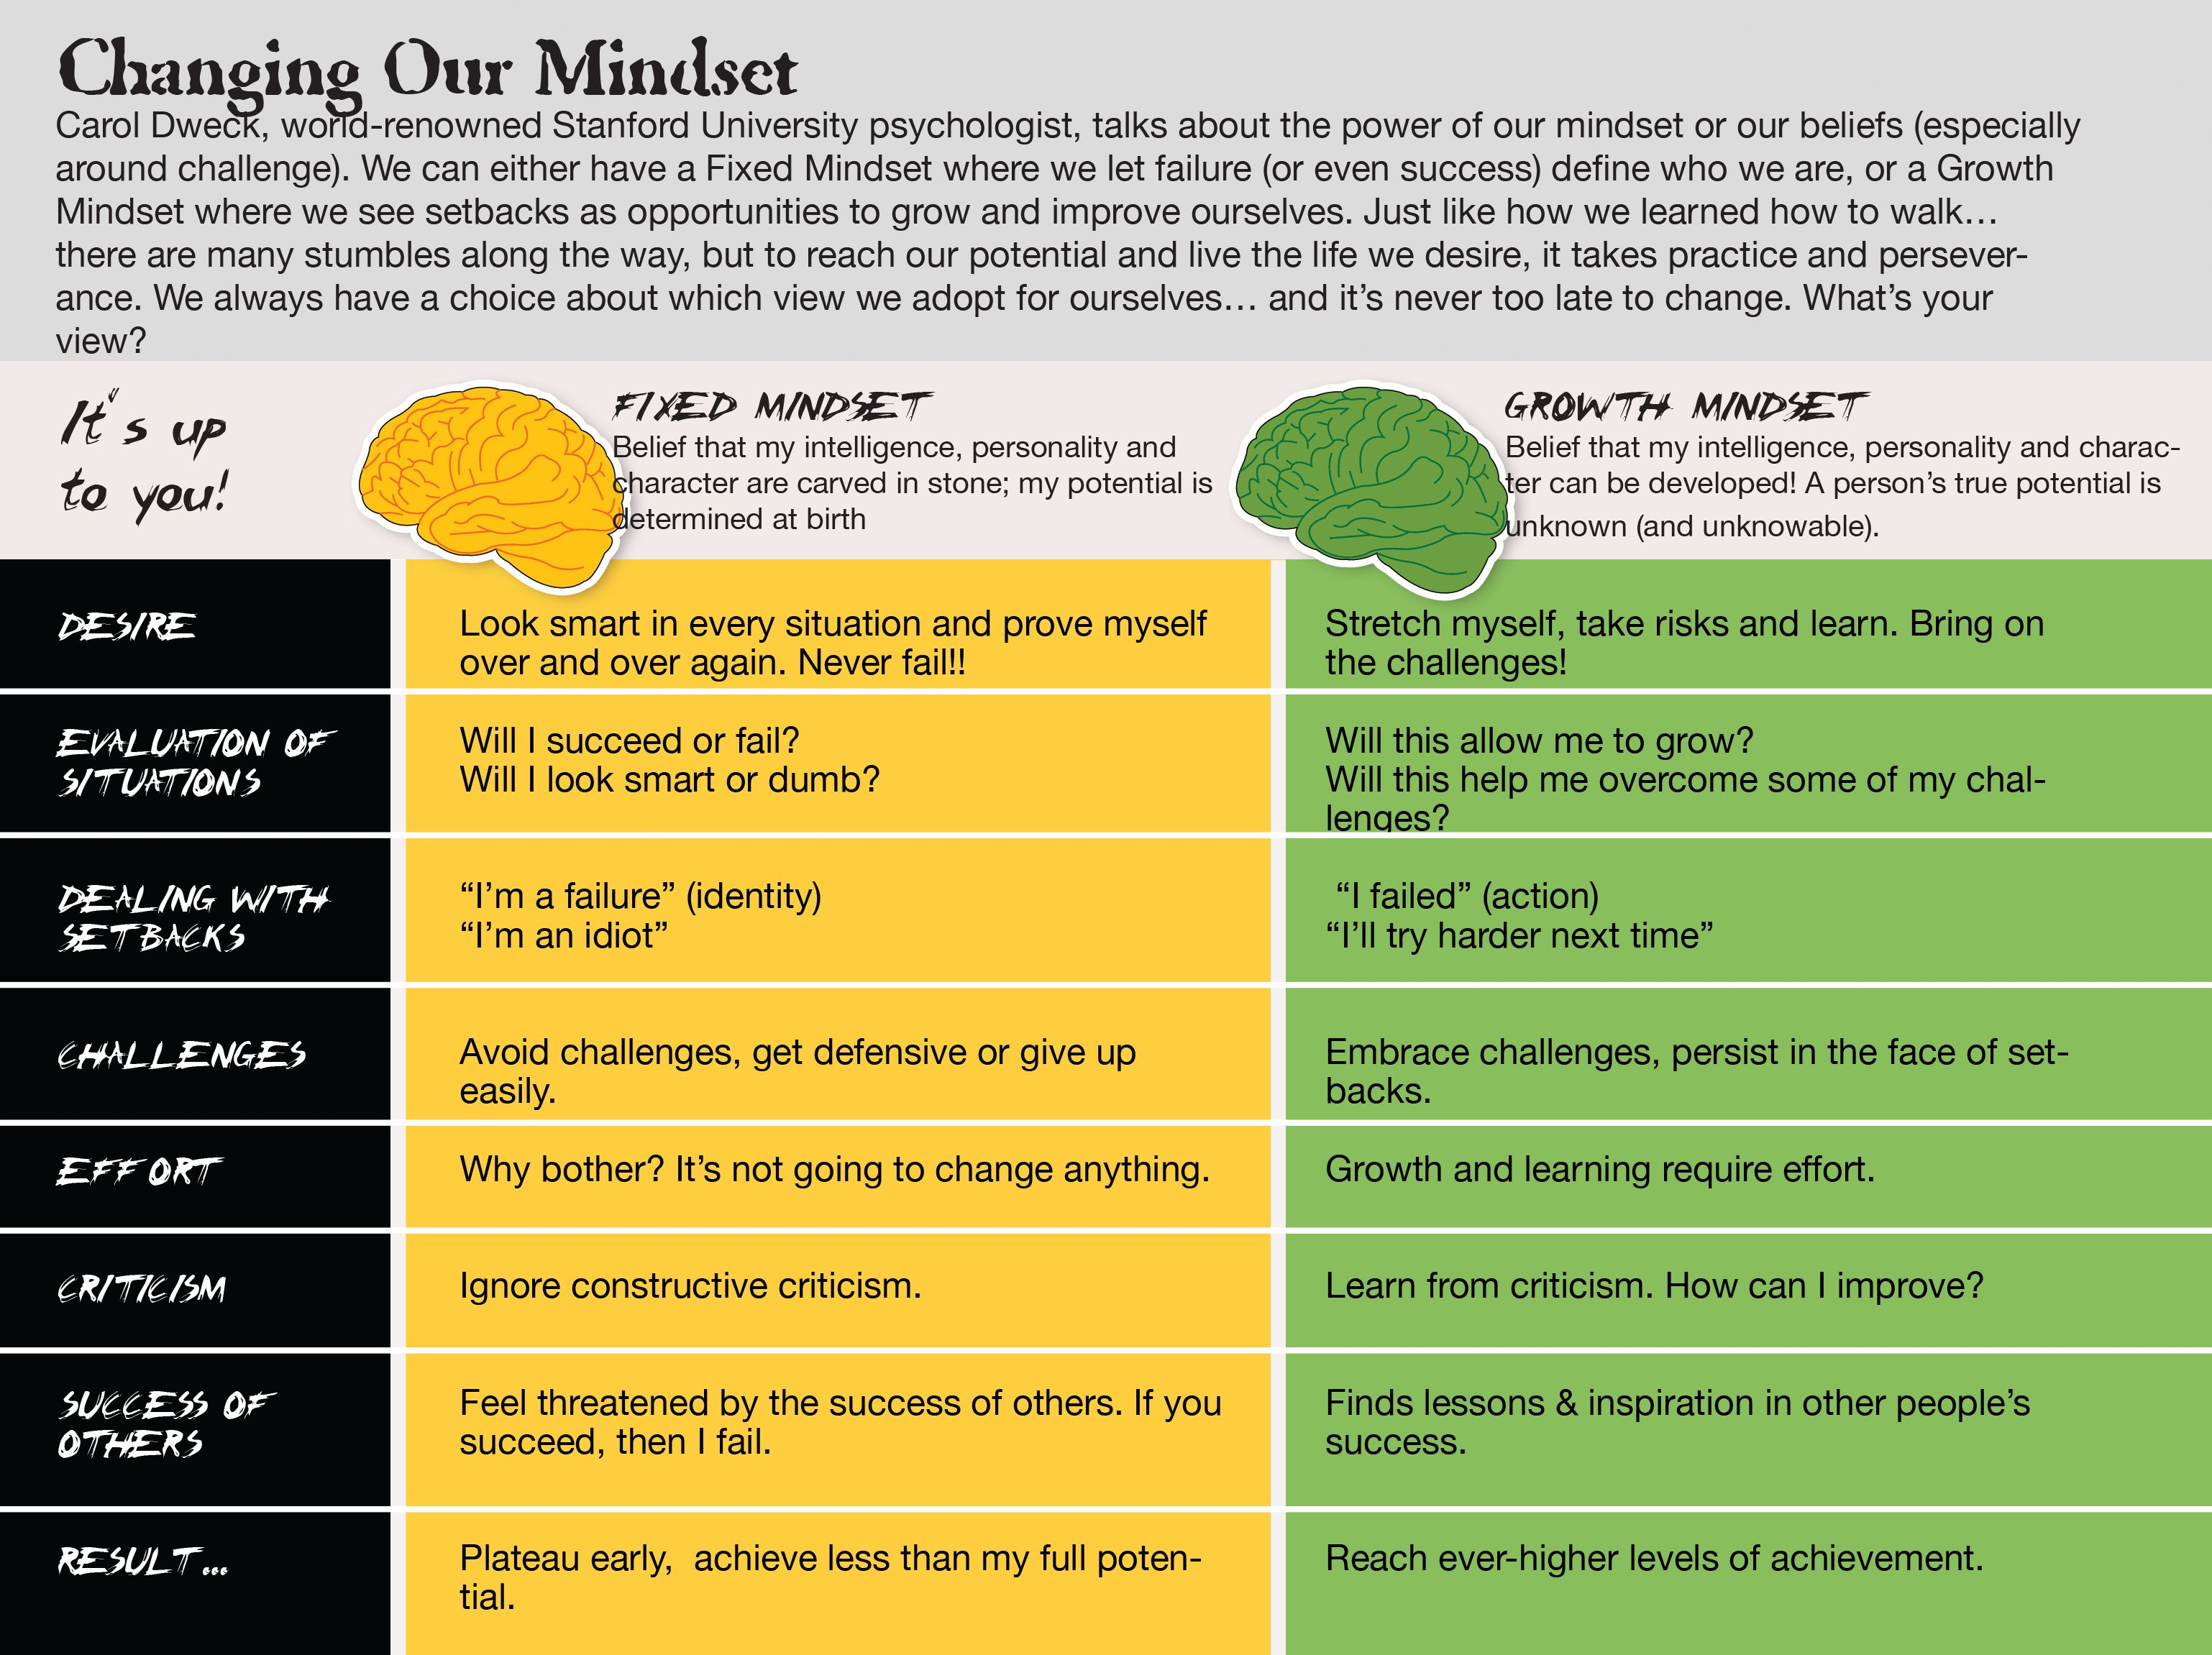 25+ best ideas about Fixed mindset on Pinterest | Growth vs fixed ...